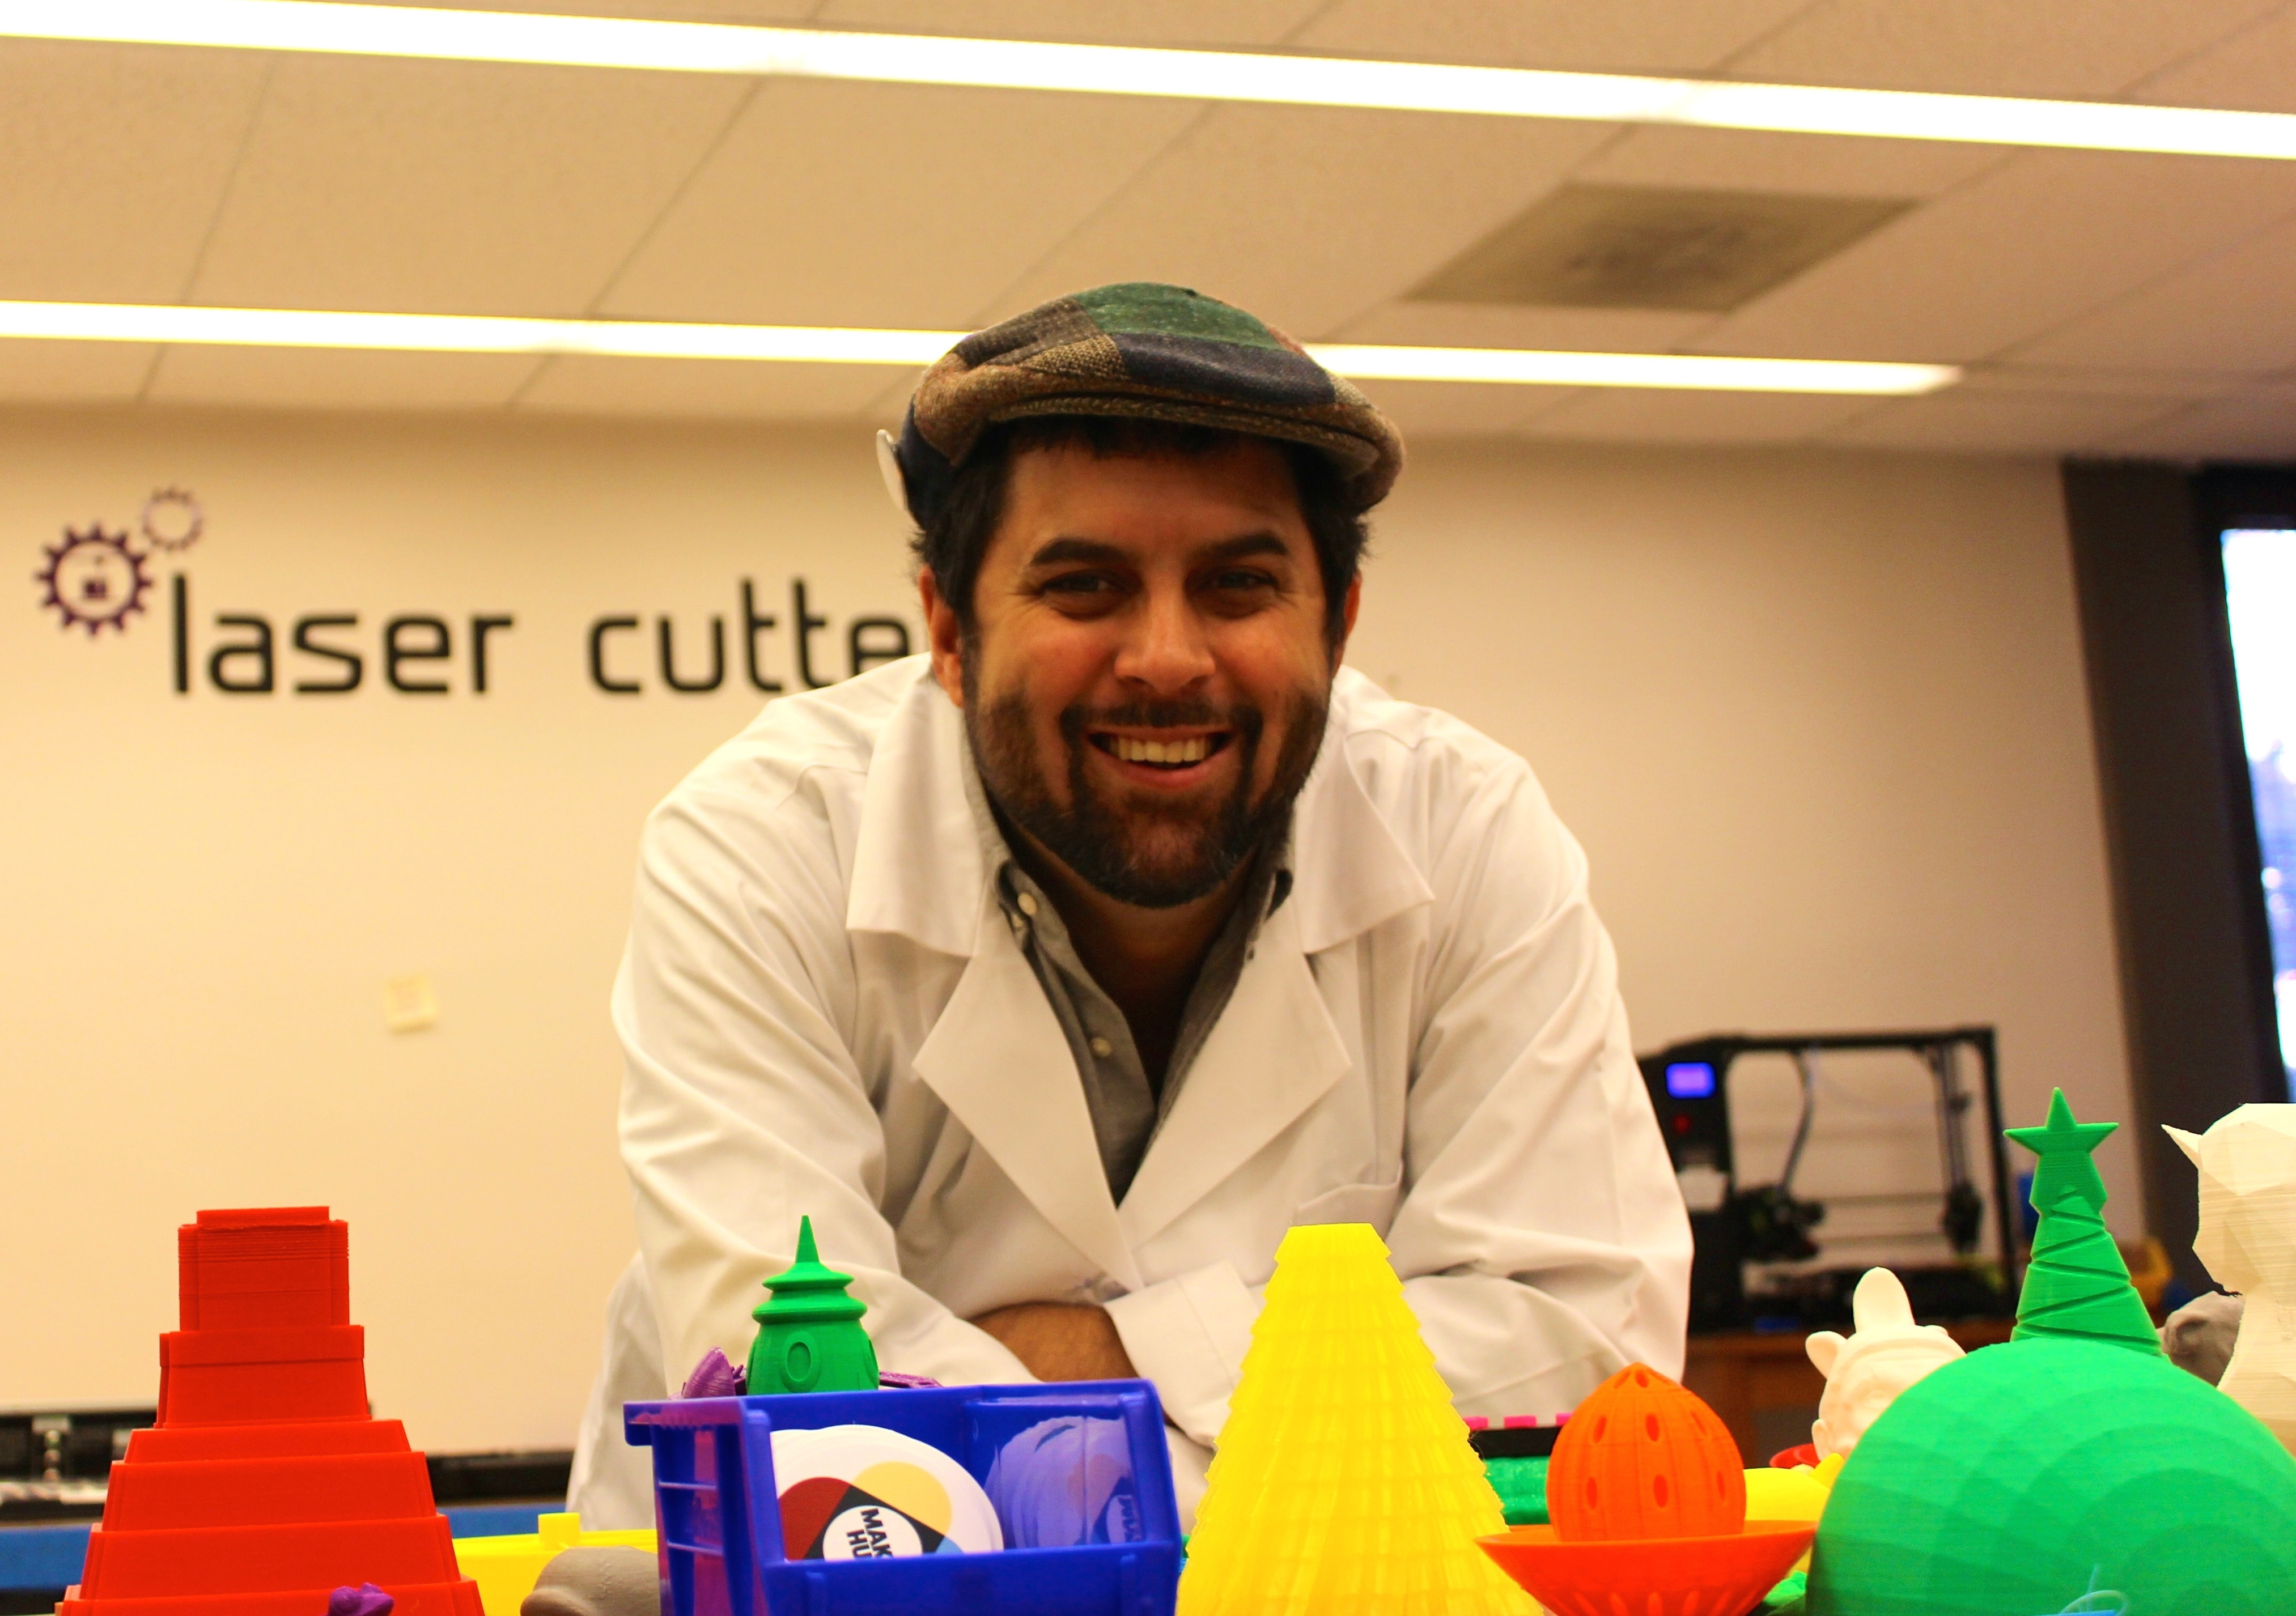 OWEN EAGAN/THE HOYA Maker Hub Manager Don Undeen was also invited to serve on the Vatican's first Arts and Technology Council. The Hub allows students to create objects for entrepreneurial reasons, or simply for fun.